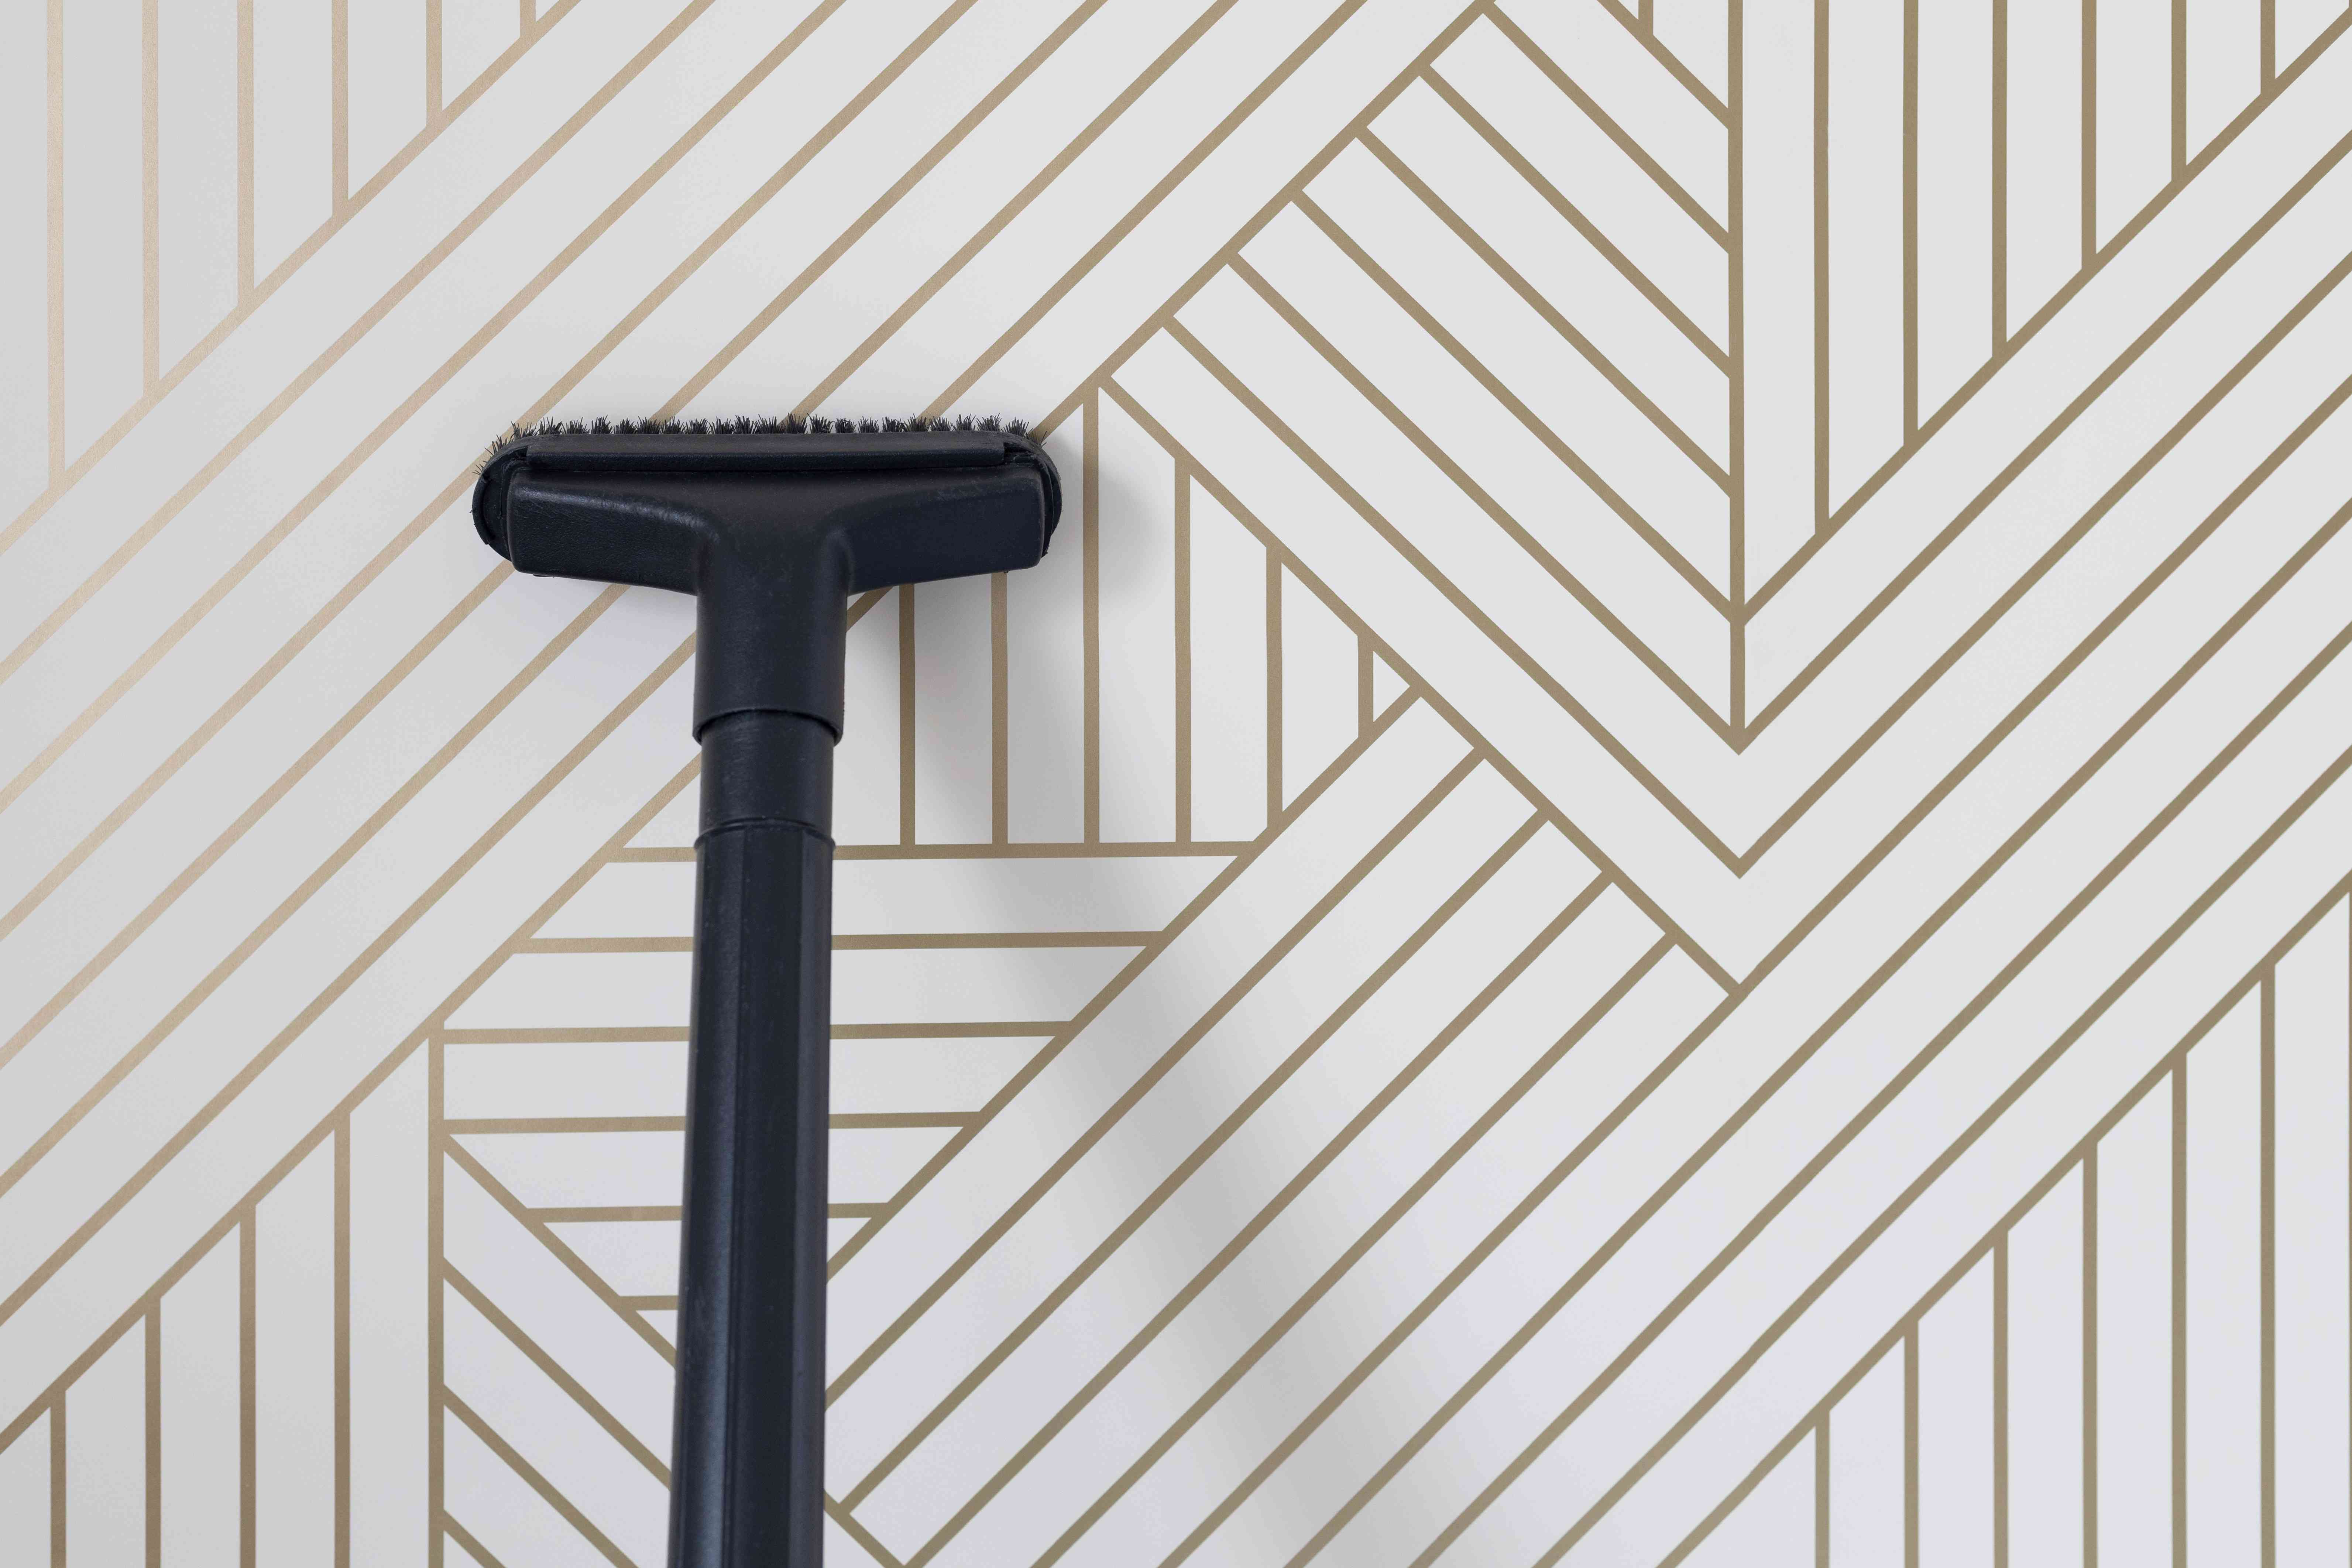 Long hose of vacuum cleaning dust off white and gold striped wallpaper